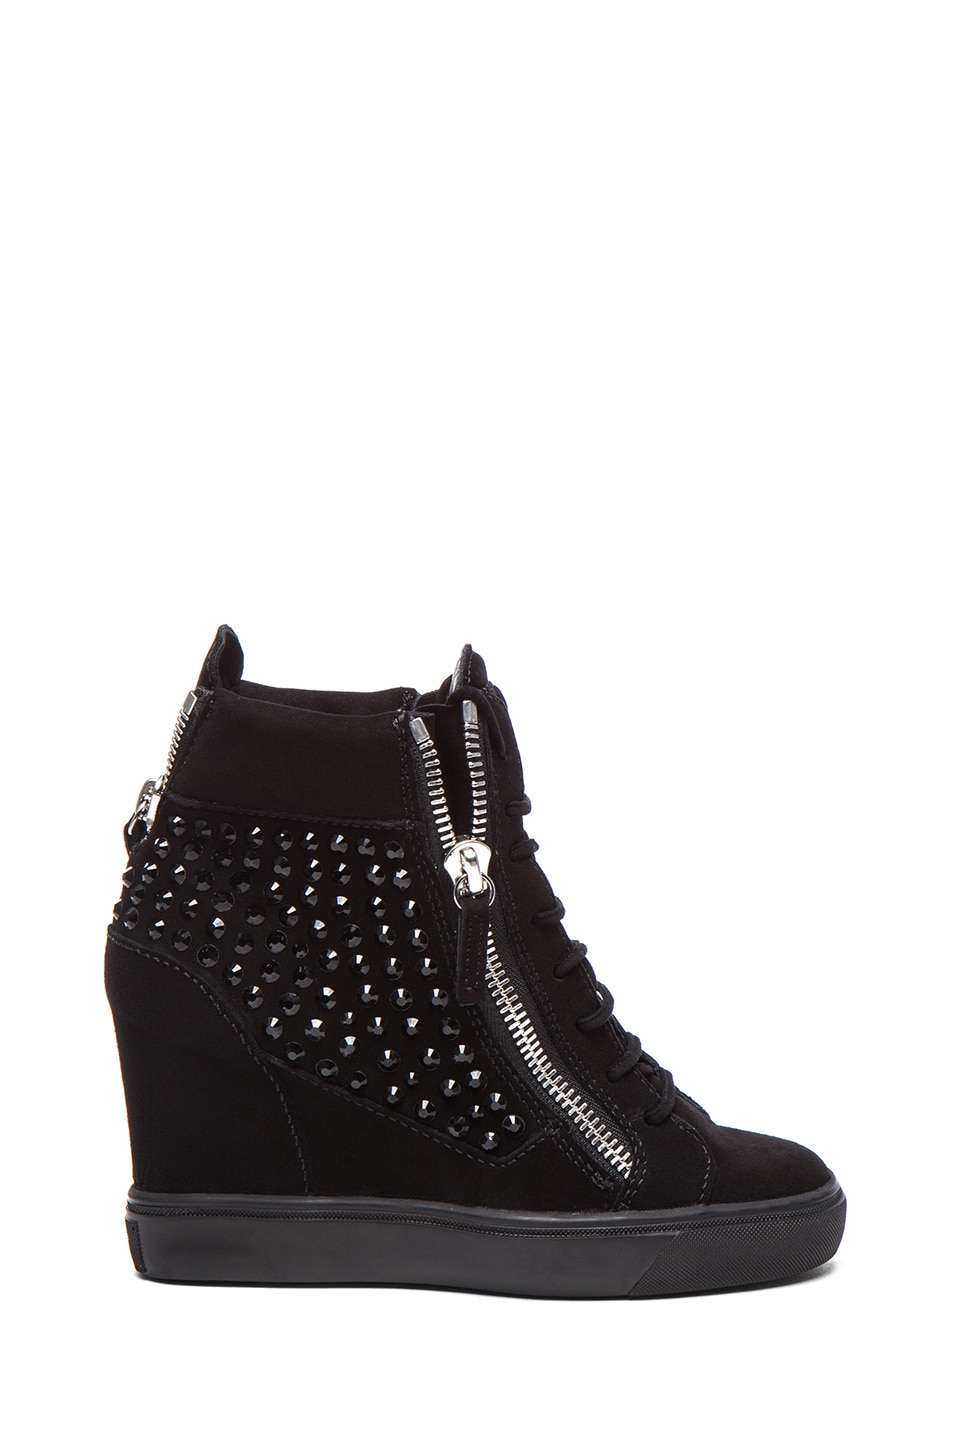 Image 1 of Giuseppe Zanotti Suede High Top Embellished Wedge Sneakers in Black